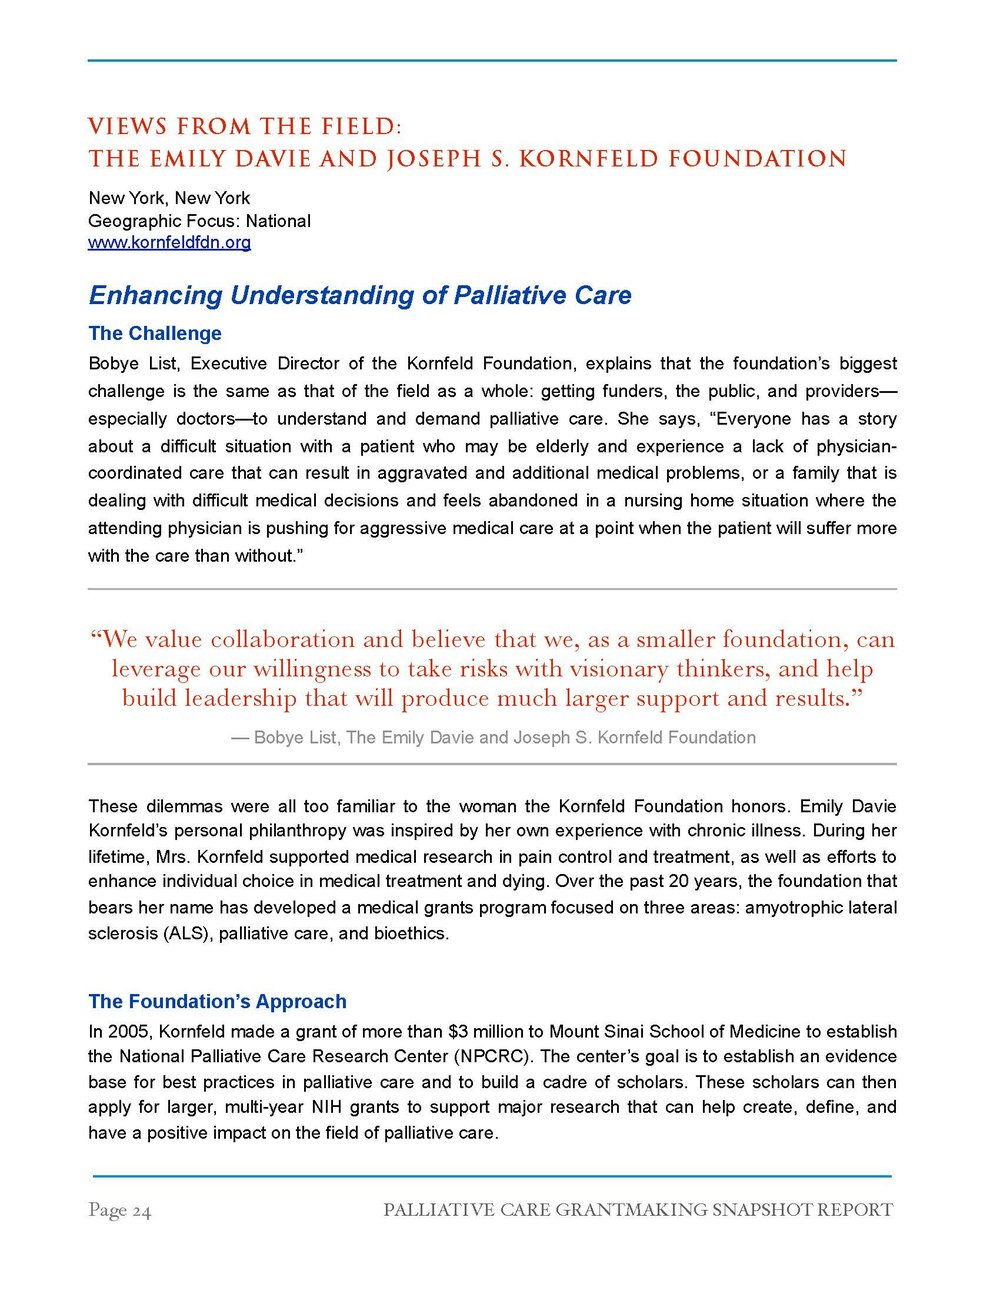 Palliative Care Grantmaking Snapshot Report_Page_26.jpg